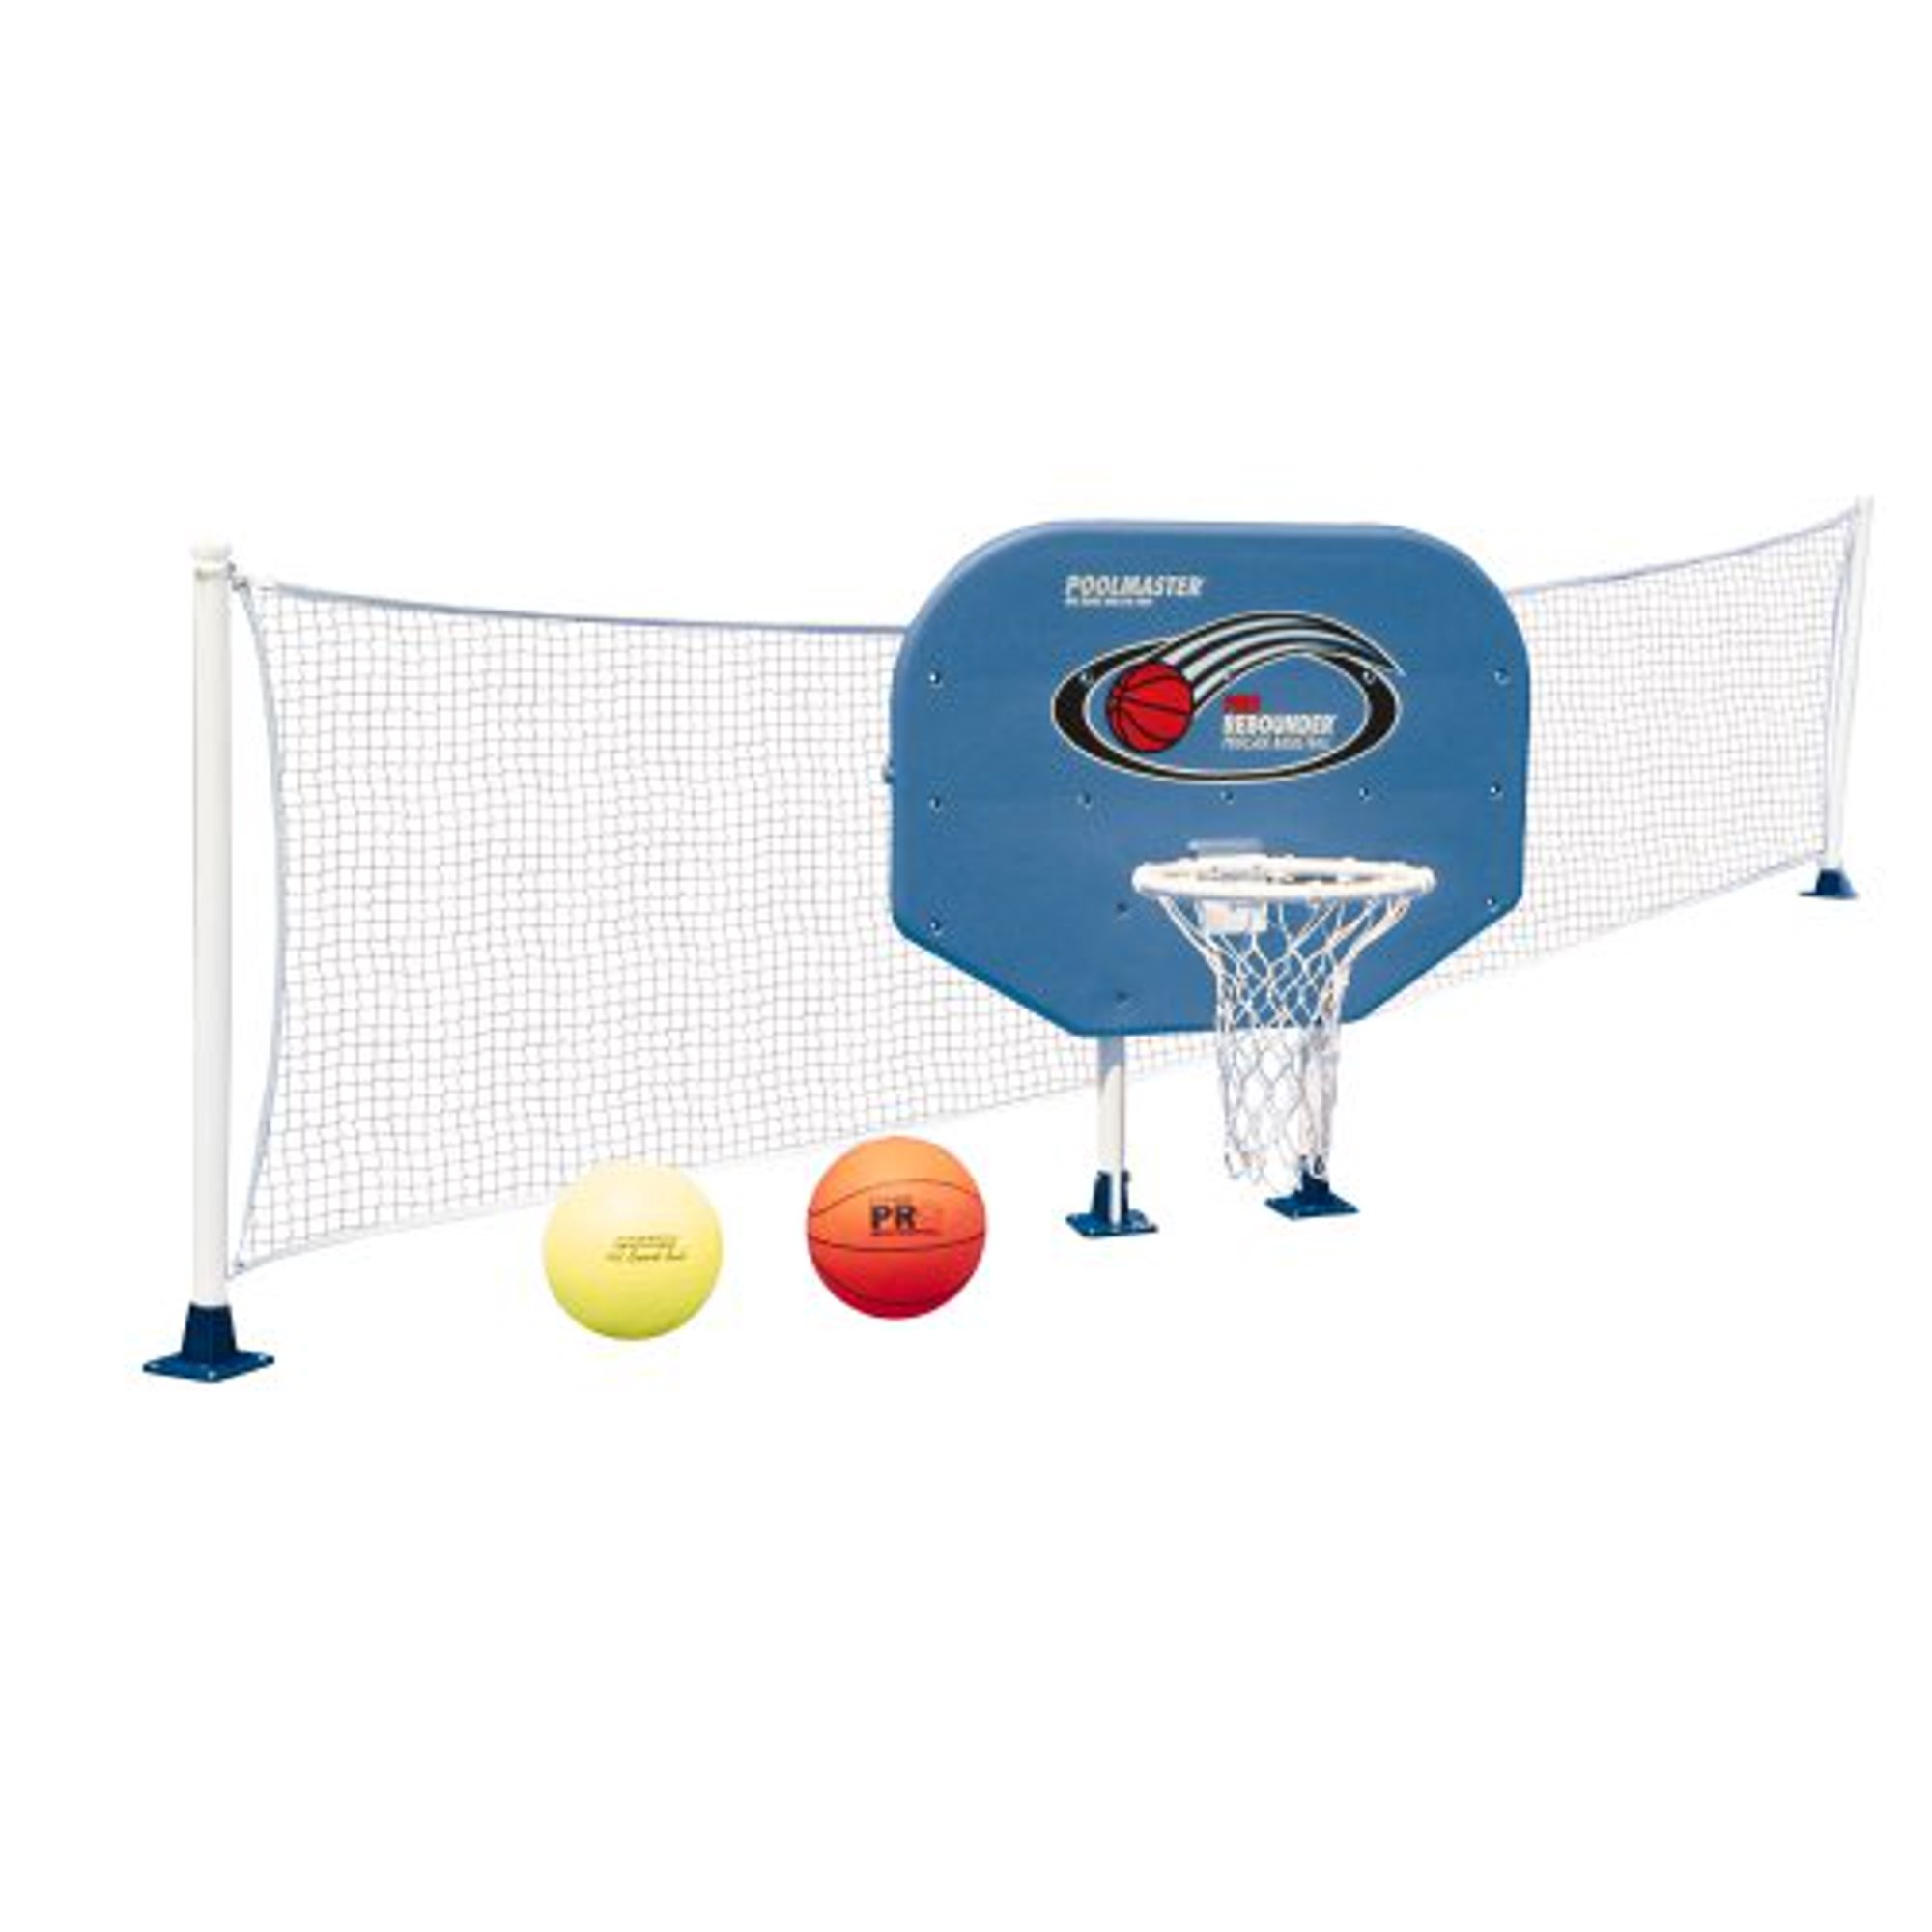 Poolmaster Swimming Pool Basketball And Volleyball Game Combo Above Ground Pool Walmart Canada